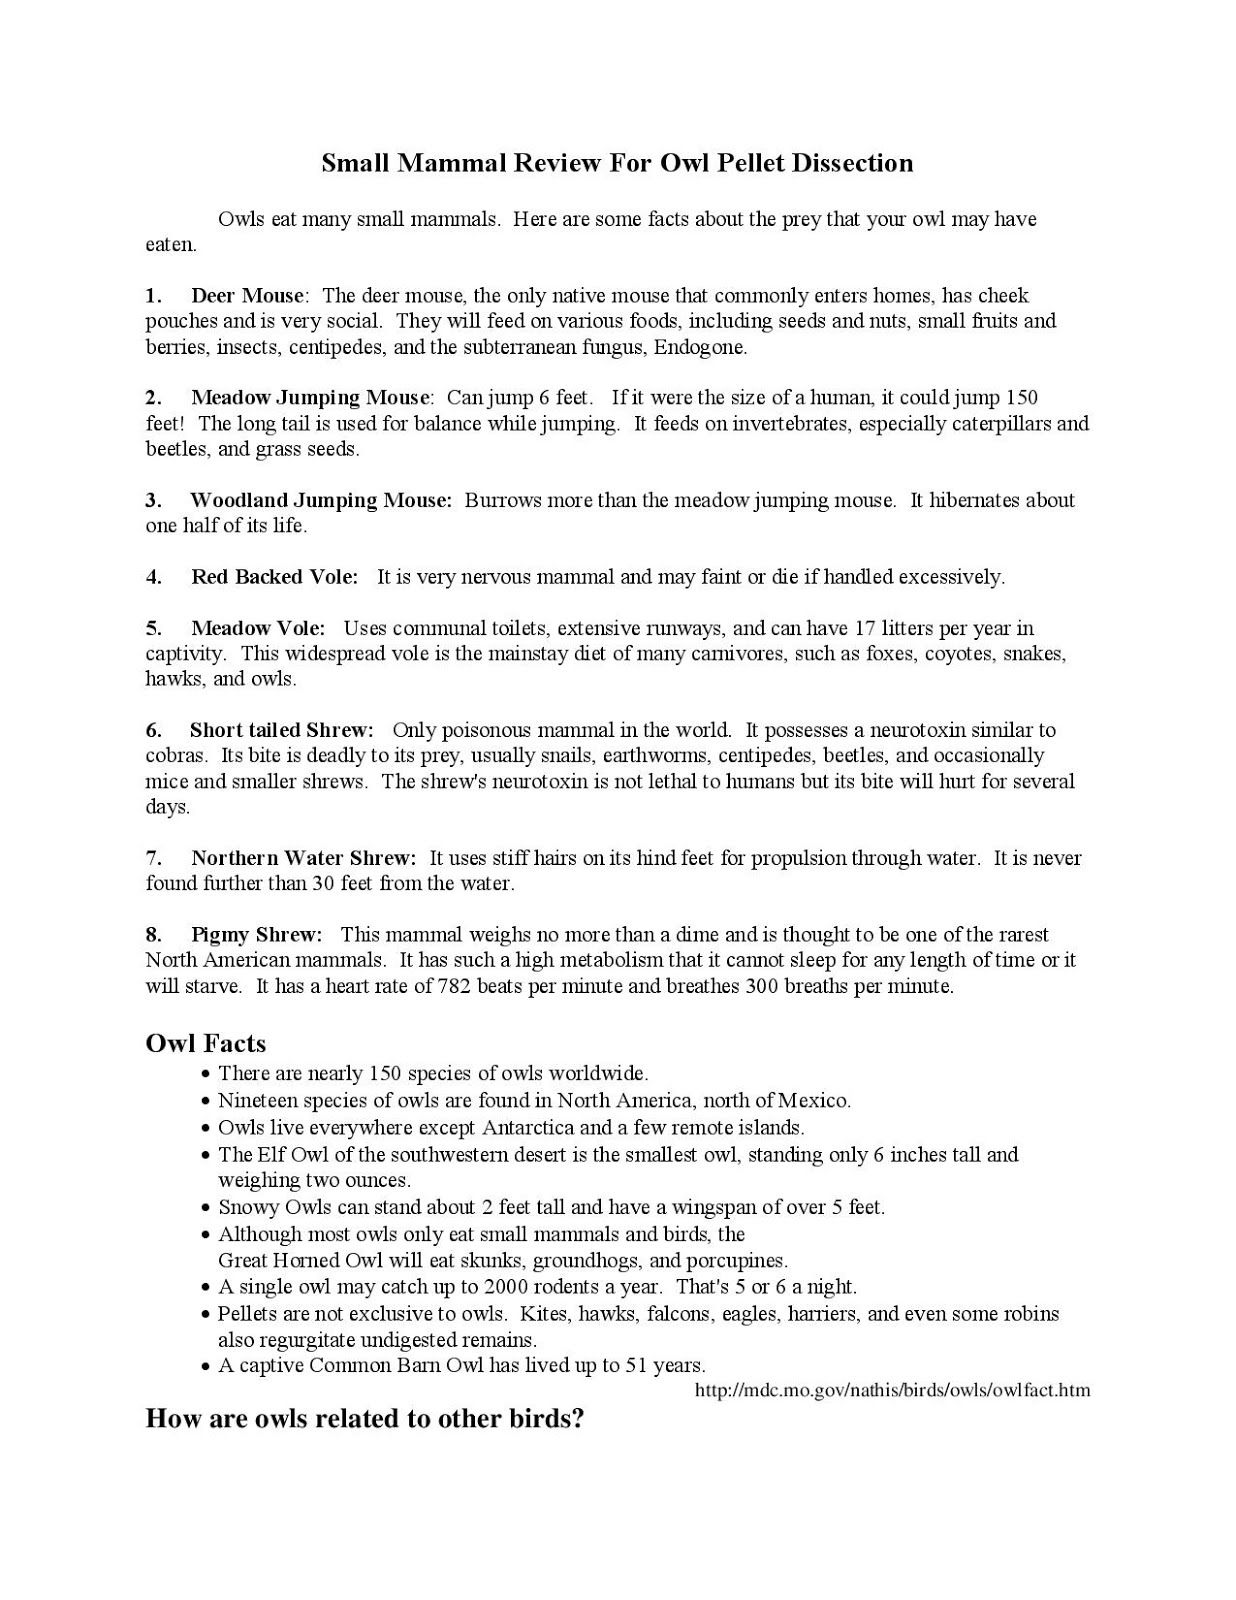 Galapagos Island Finches Worksheet